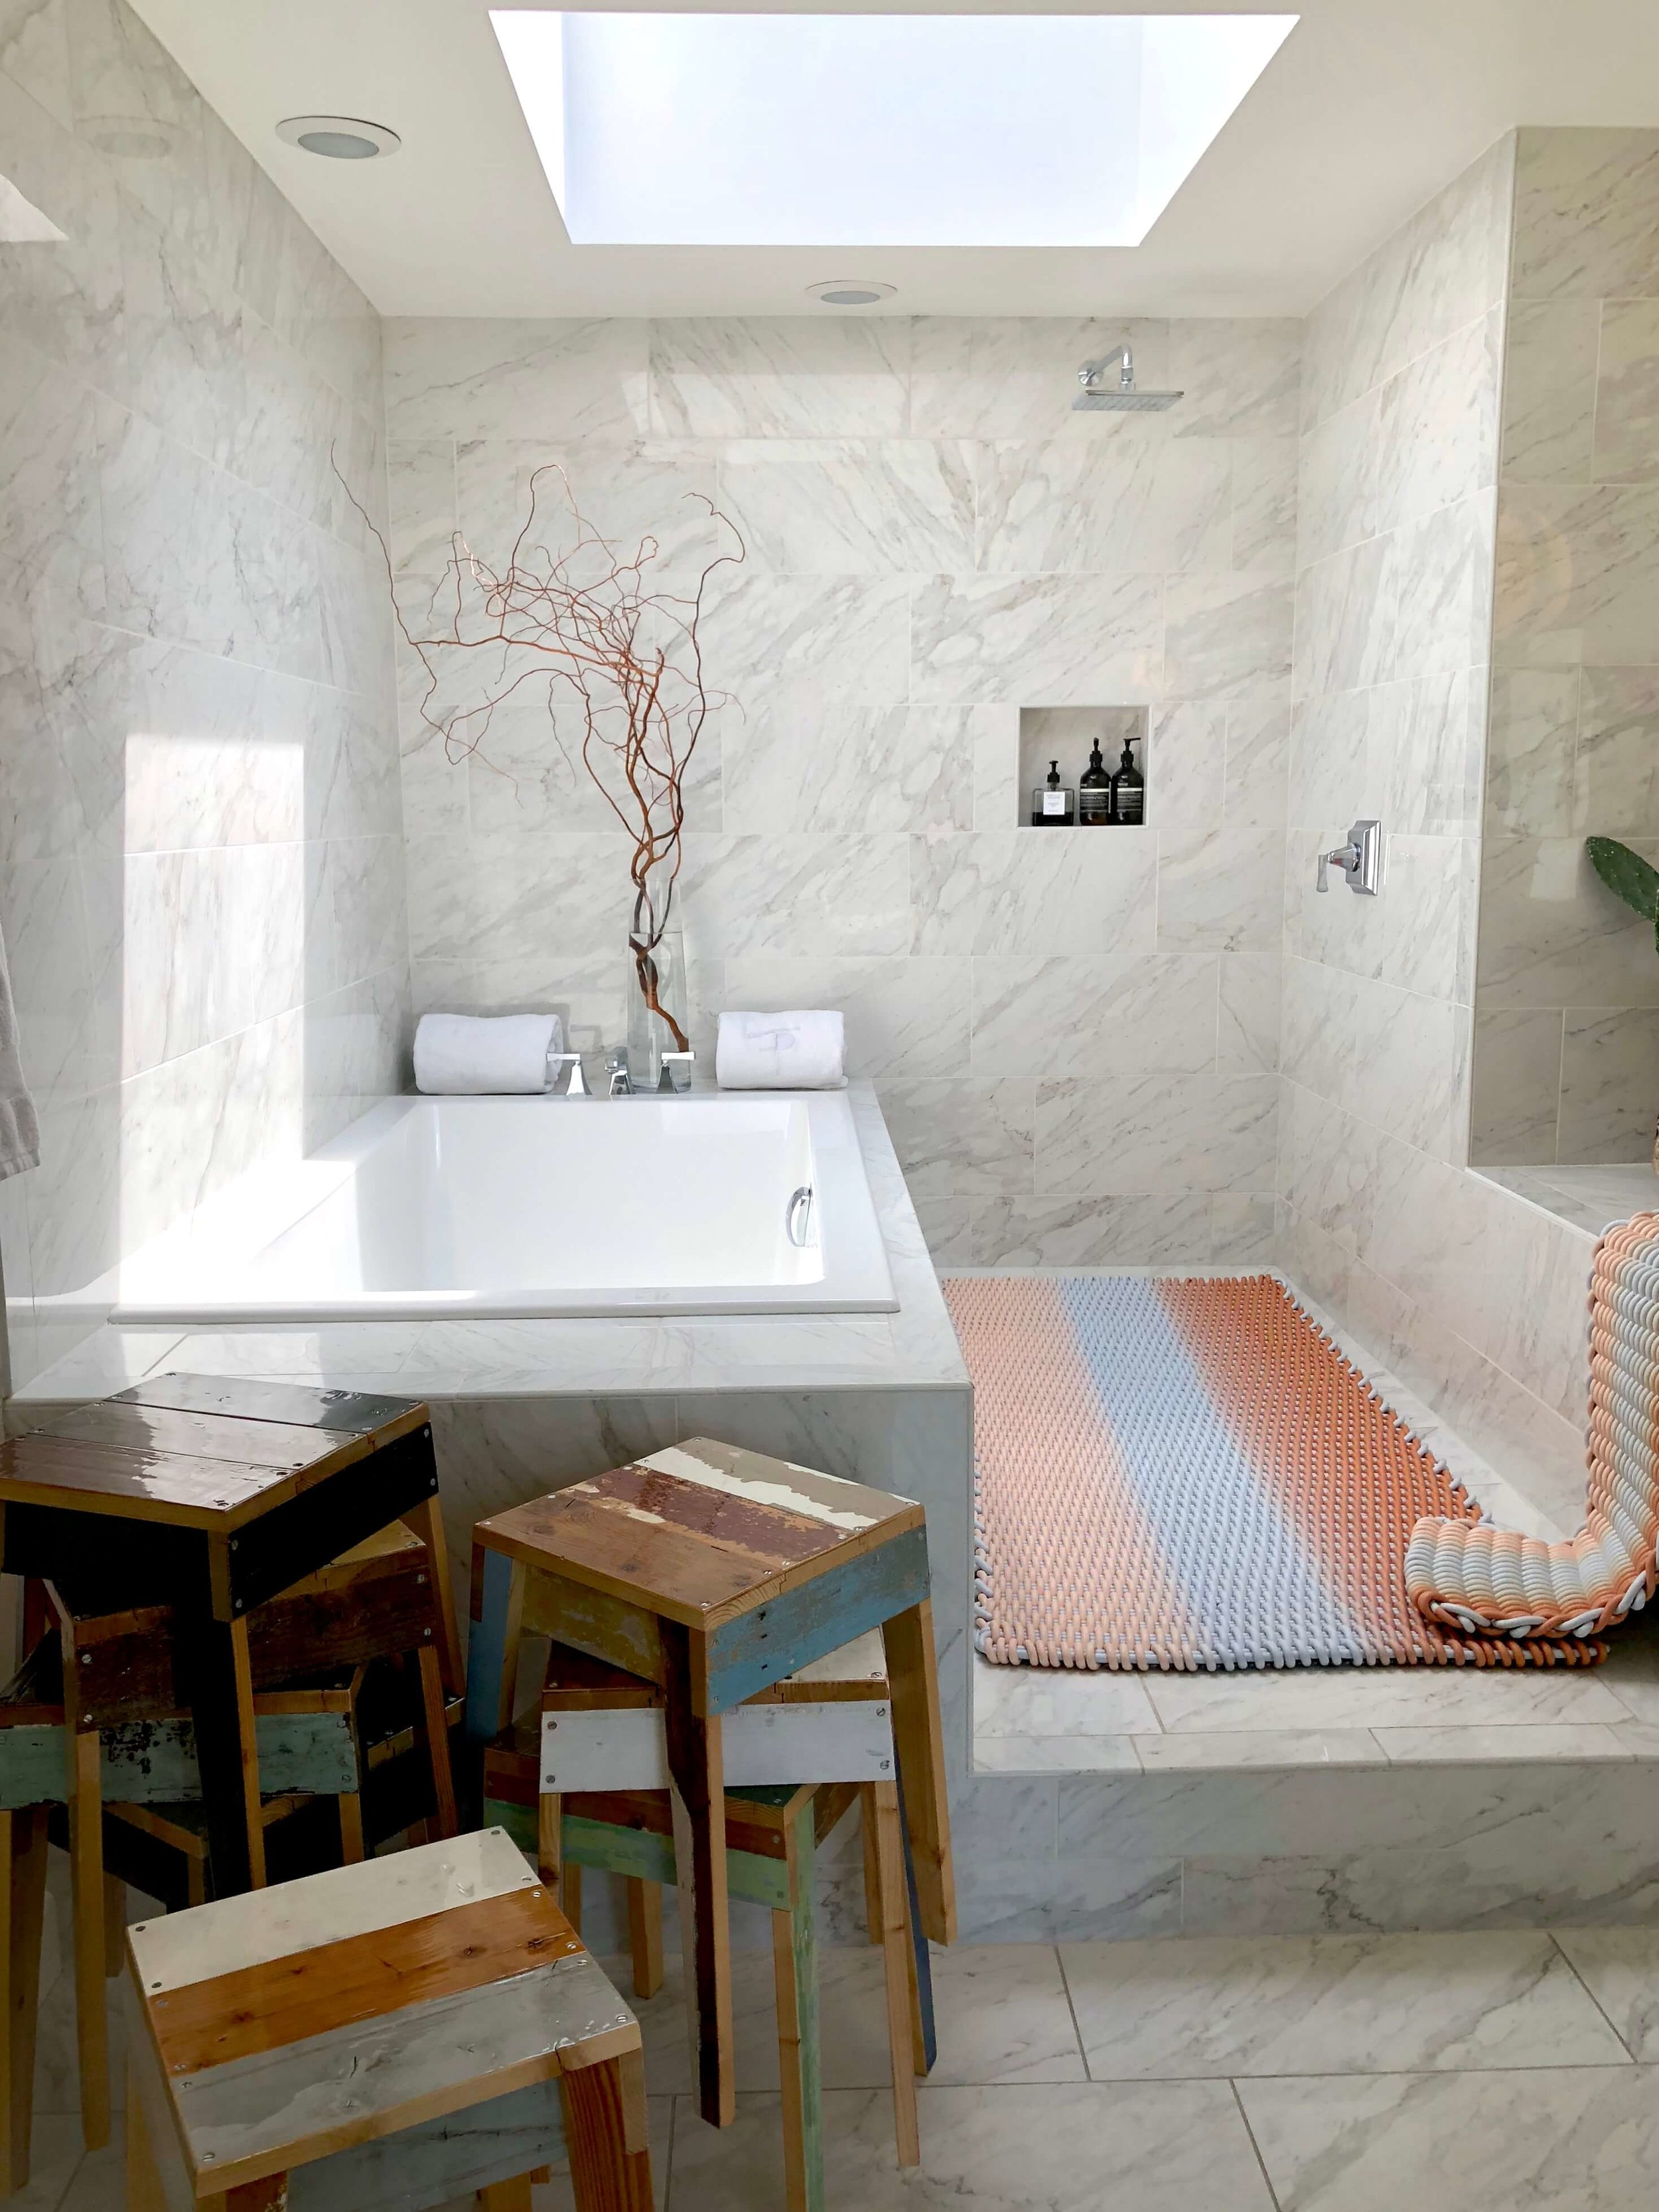 White marble bathroom featuring Shore Rugs and stools by Piet Hein Eek at Casa Perfect #whitemarble #stools #rugs #bathroom